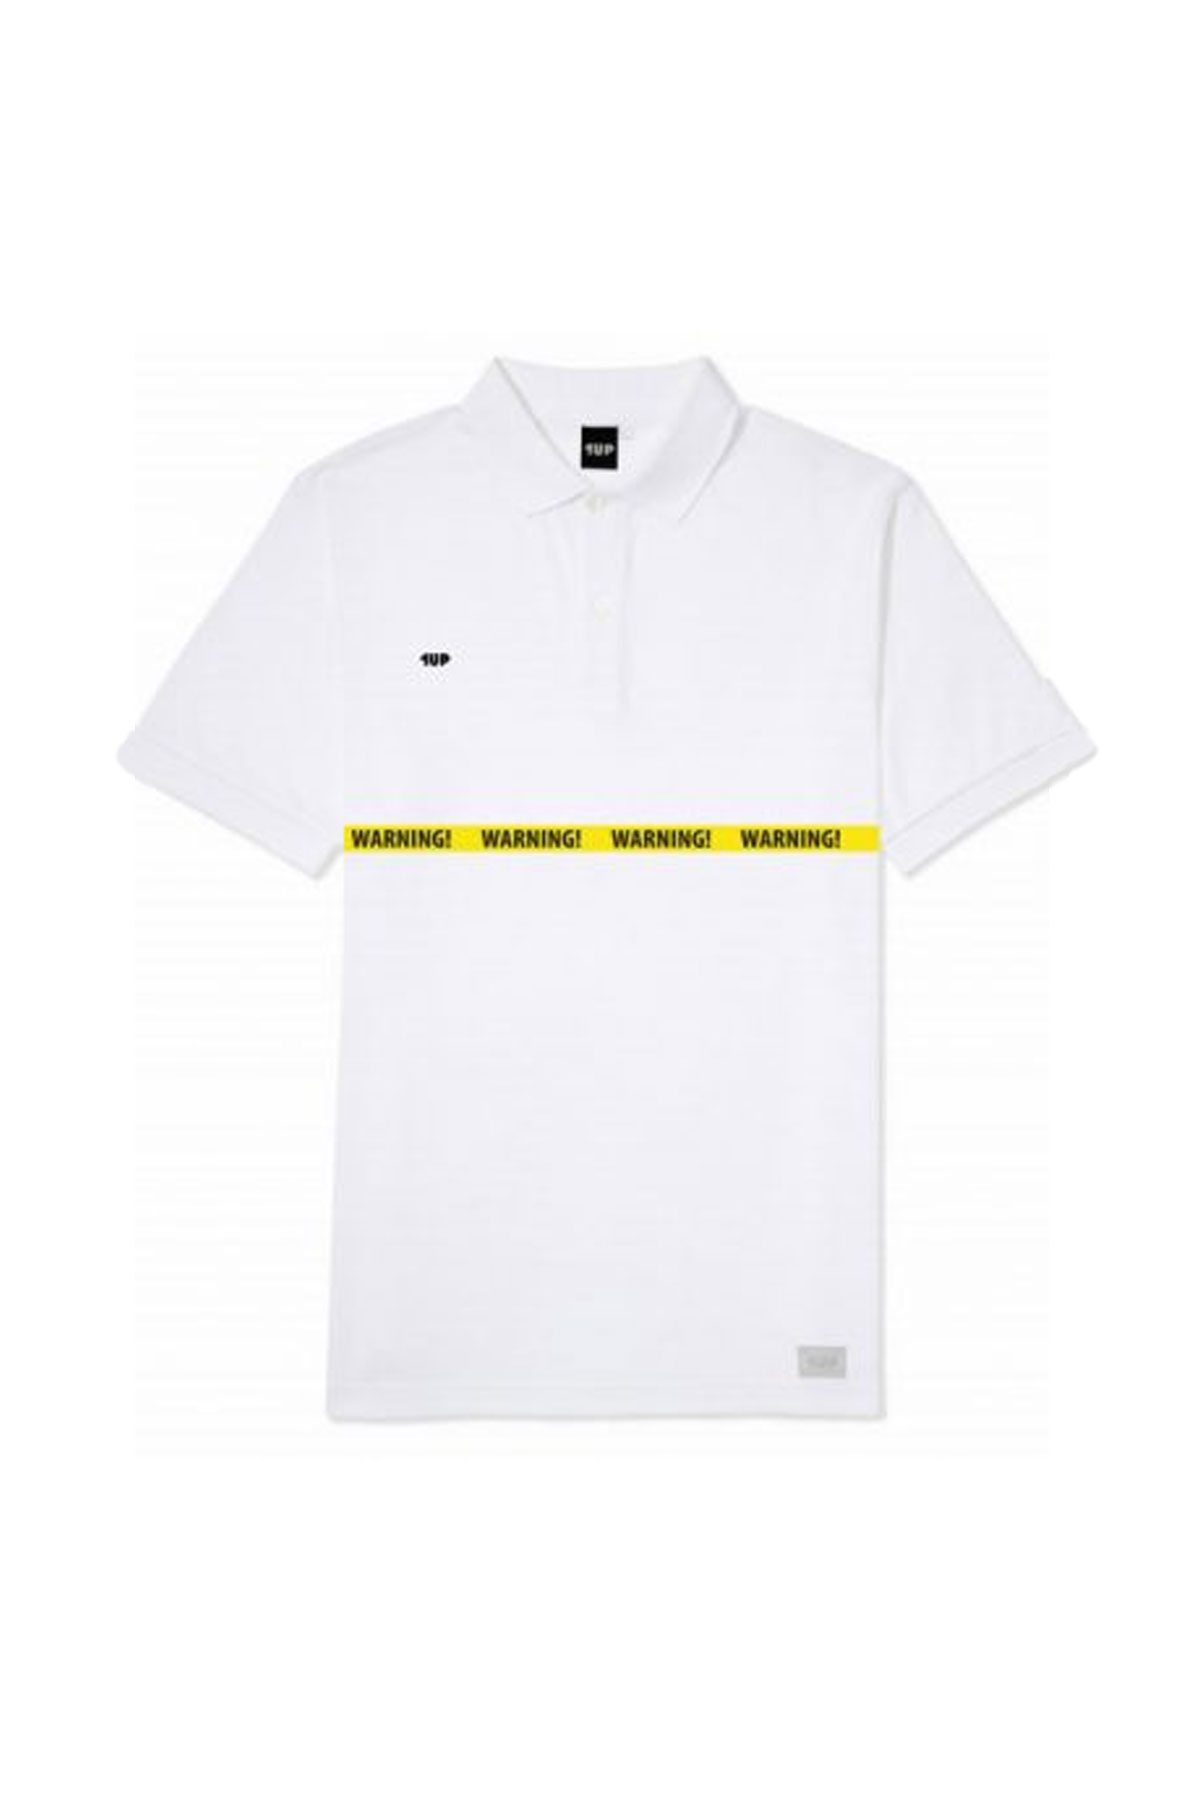 1UP WARNING Polo T-Shirt